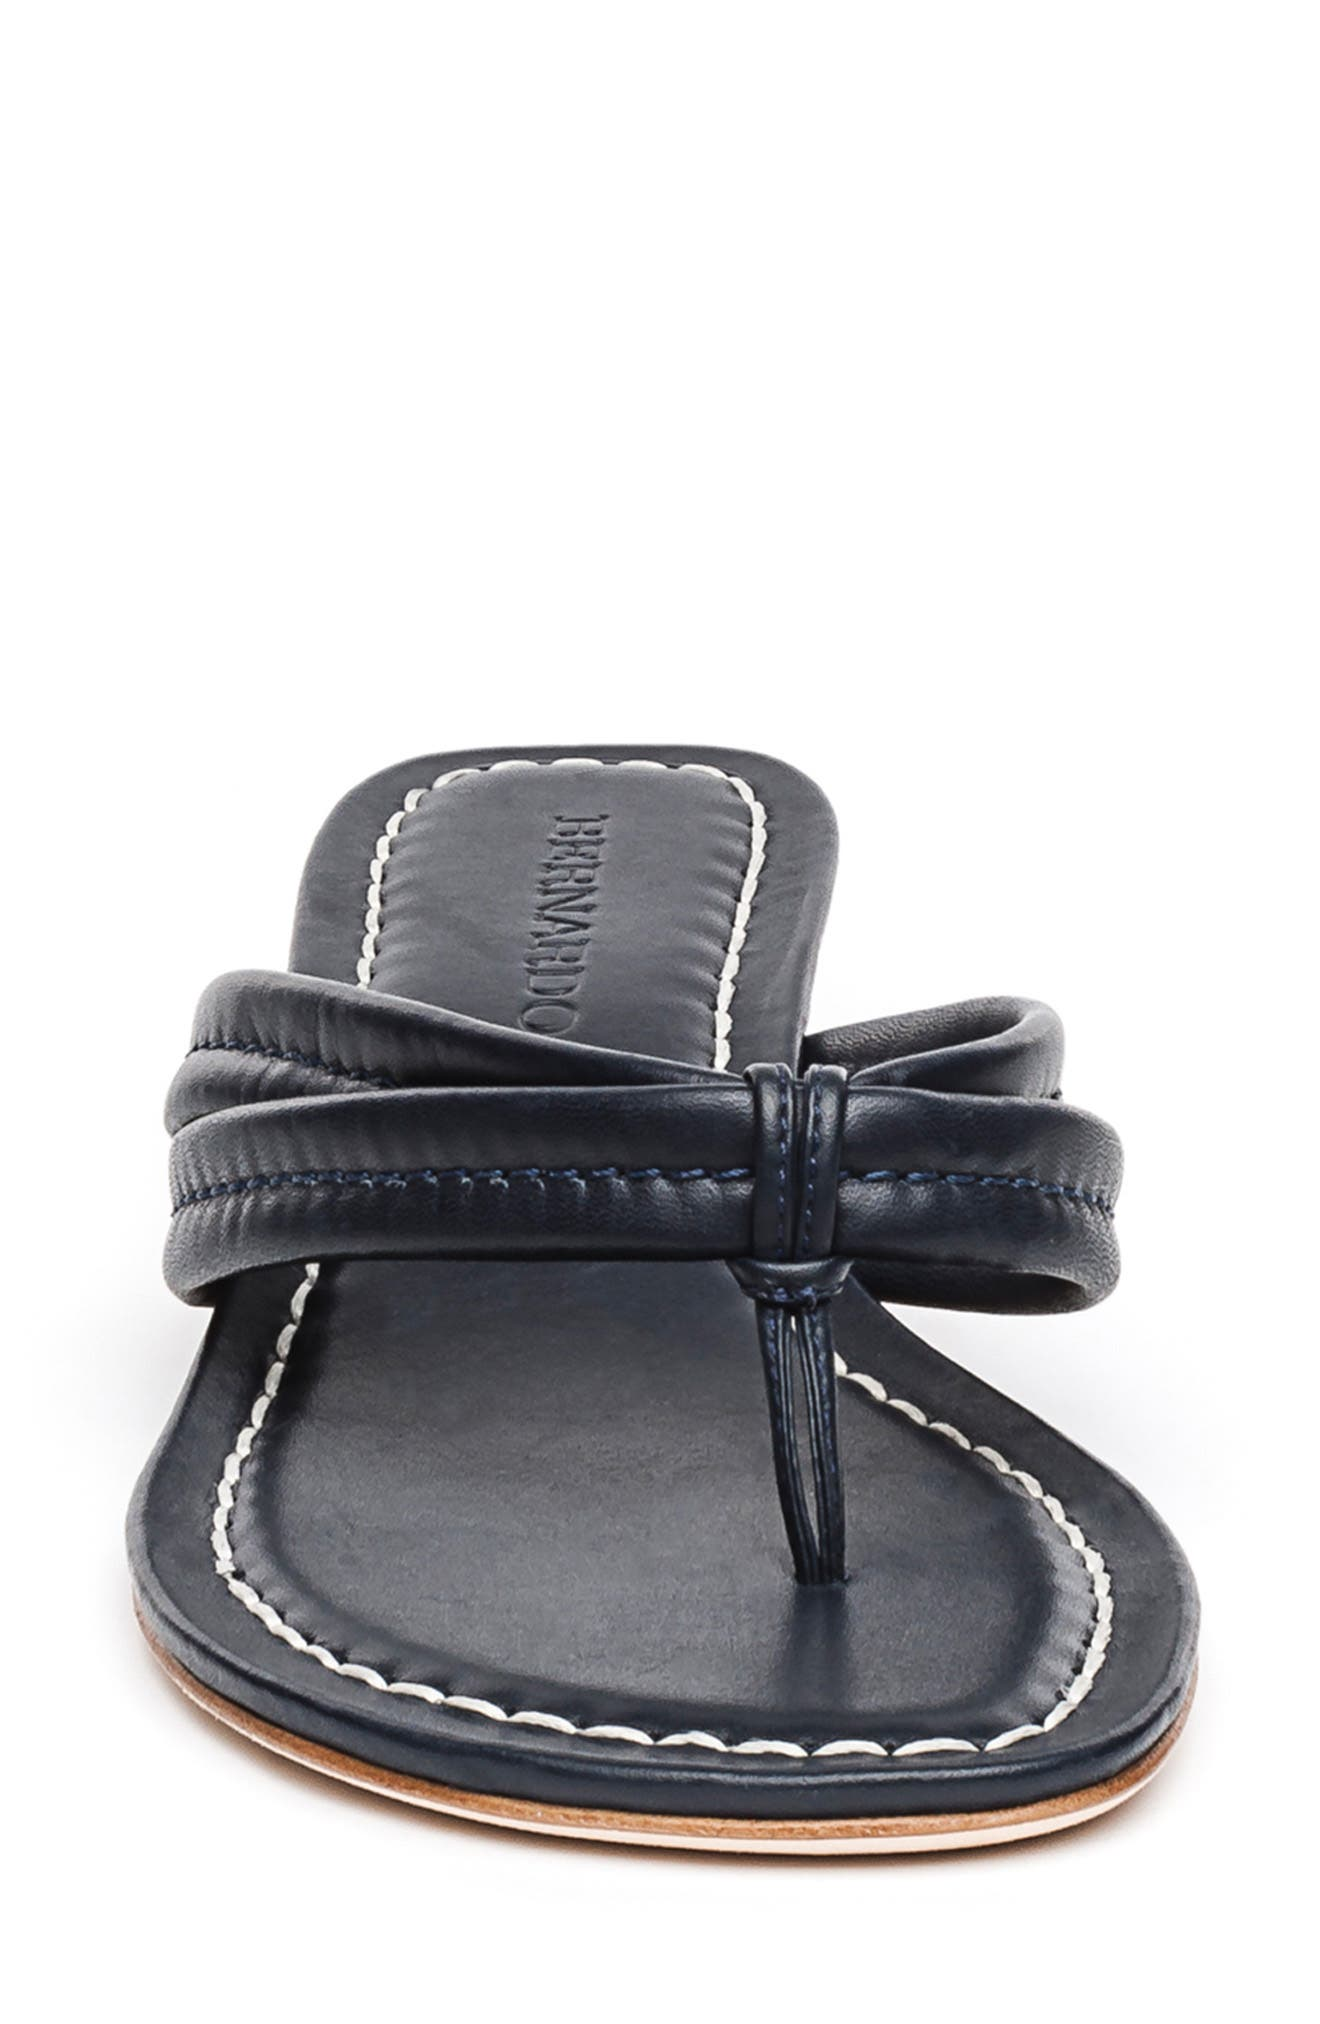 BERNARDO, Miami Sandal, Alternate thumbnail 4, color, BLACK ANTIQUE LEATHER